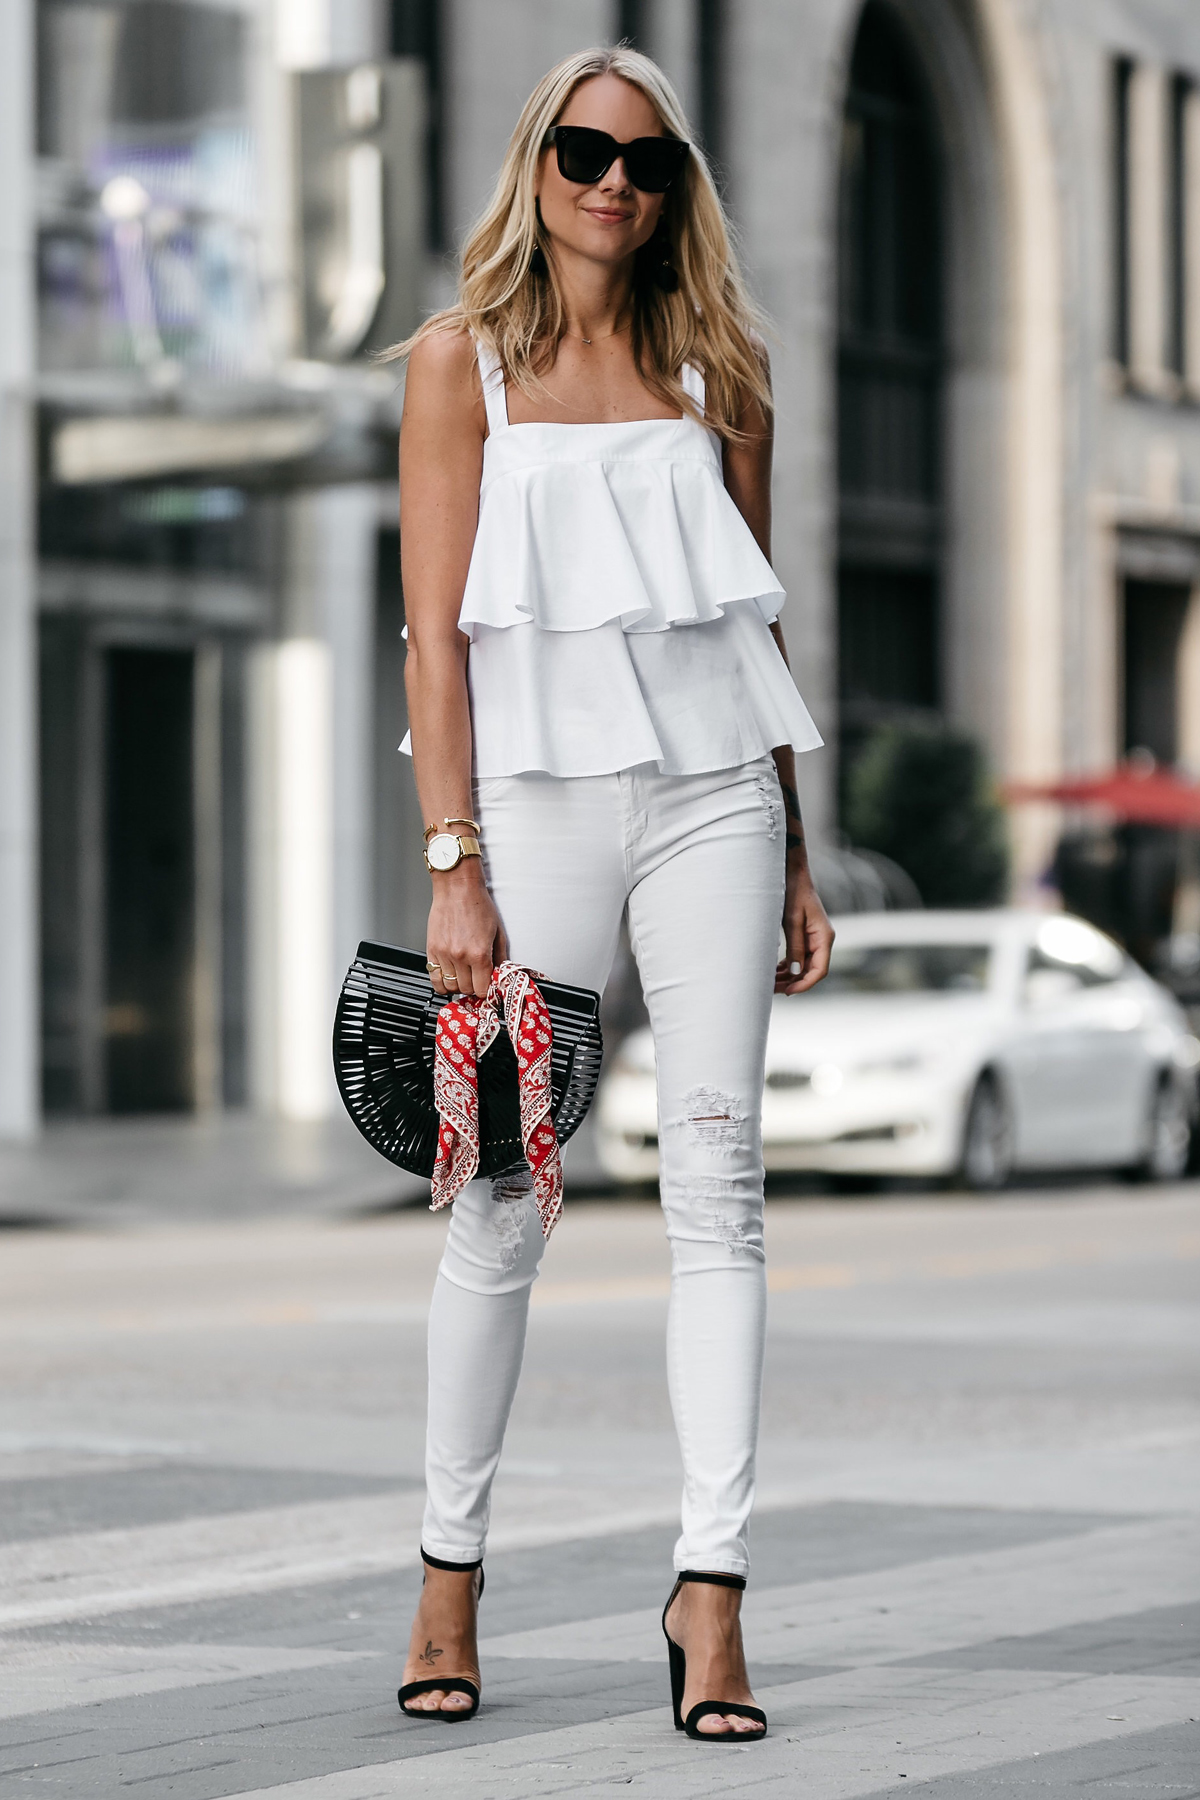 Blonde Woman Wearing Nordstrom White Ruffle Tank White Ripped Skinny Jeans Outfit Black Ankle Strap Heeled Sandals Cult Gaia Black Acrylic Clutch Red Bandana Fashion Jackson Dallas Blogger Fashion Blogger Street Style